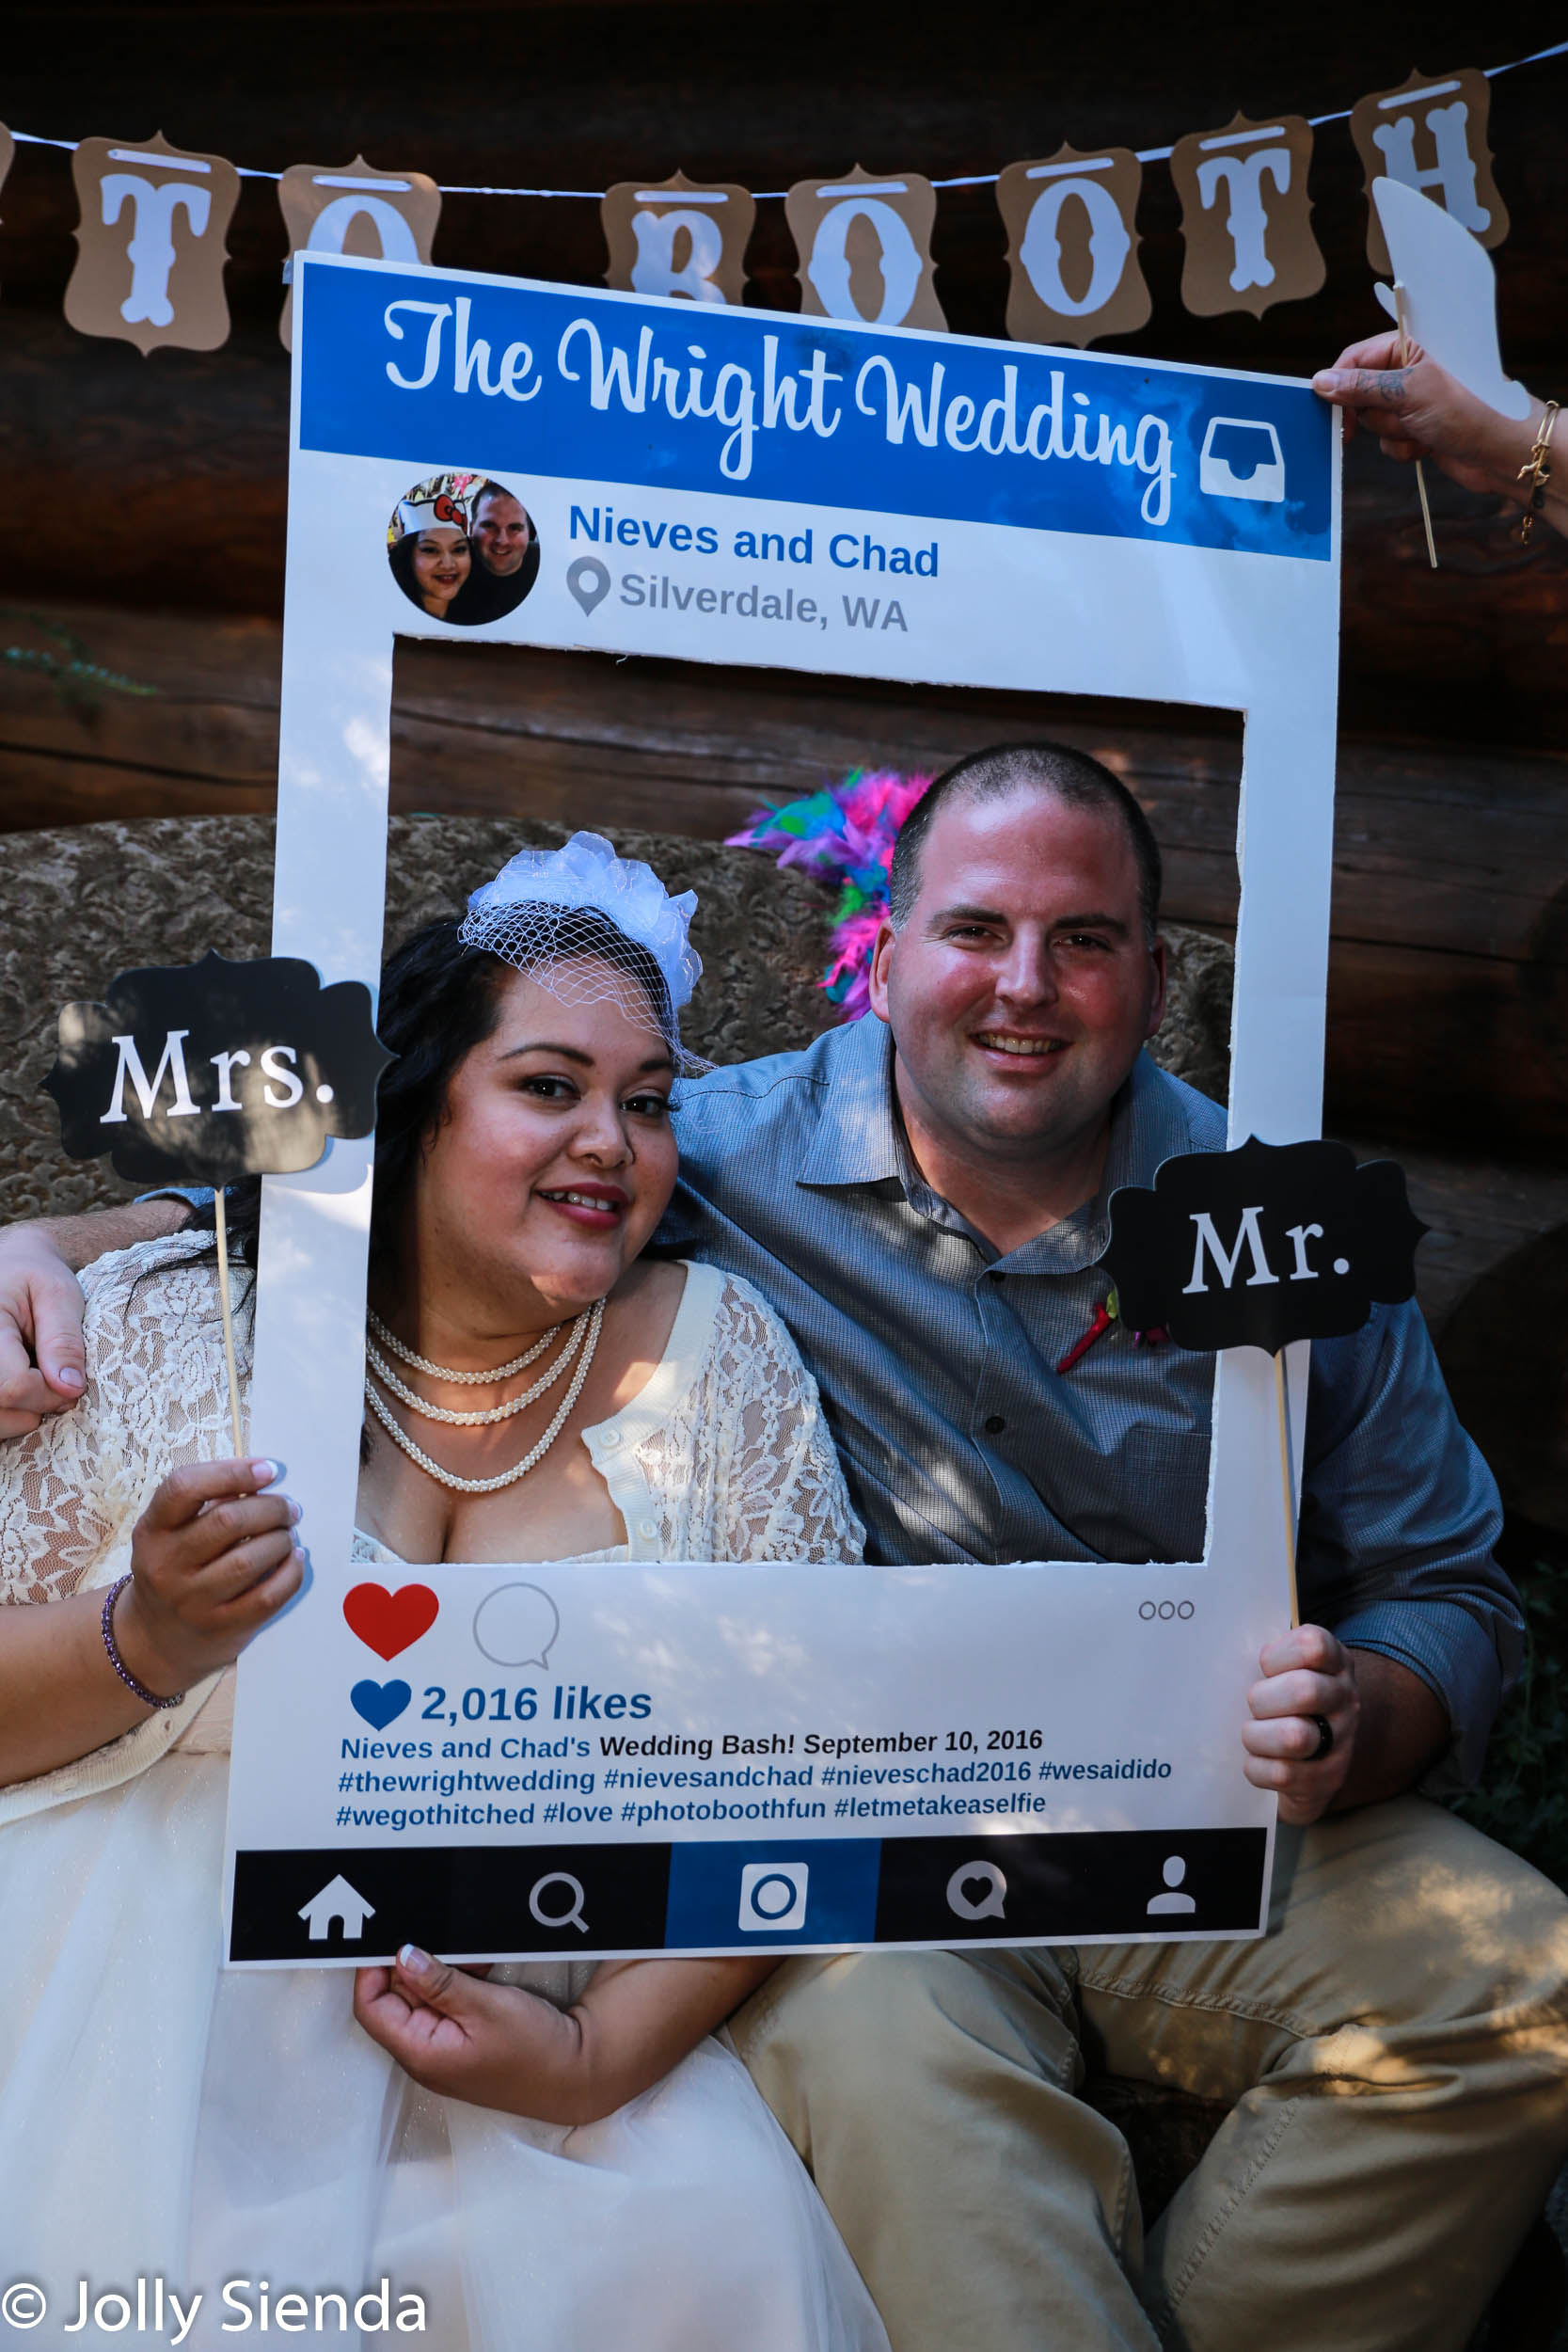 Nieves and Chad, Wright Wedding, Social Media, photo booth weddi